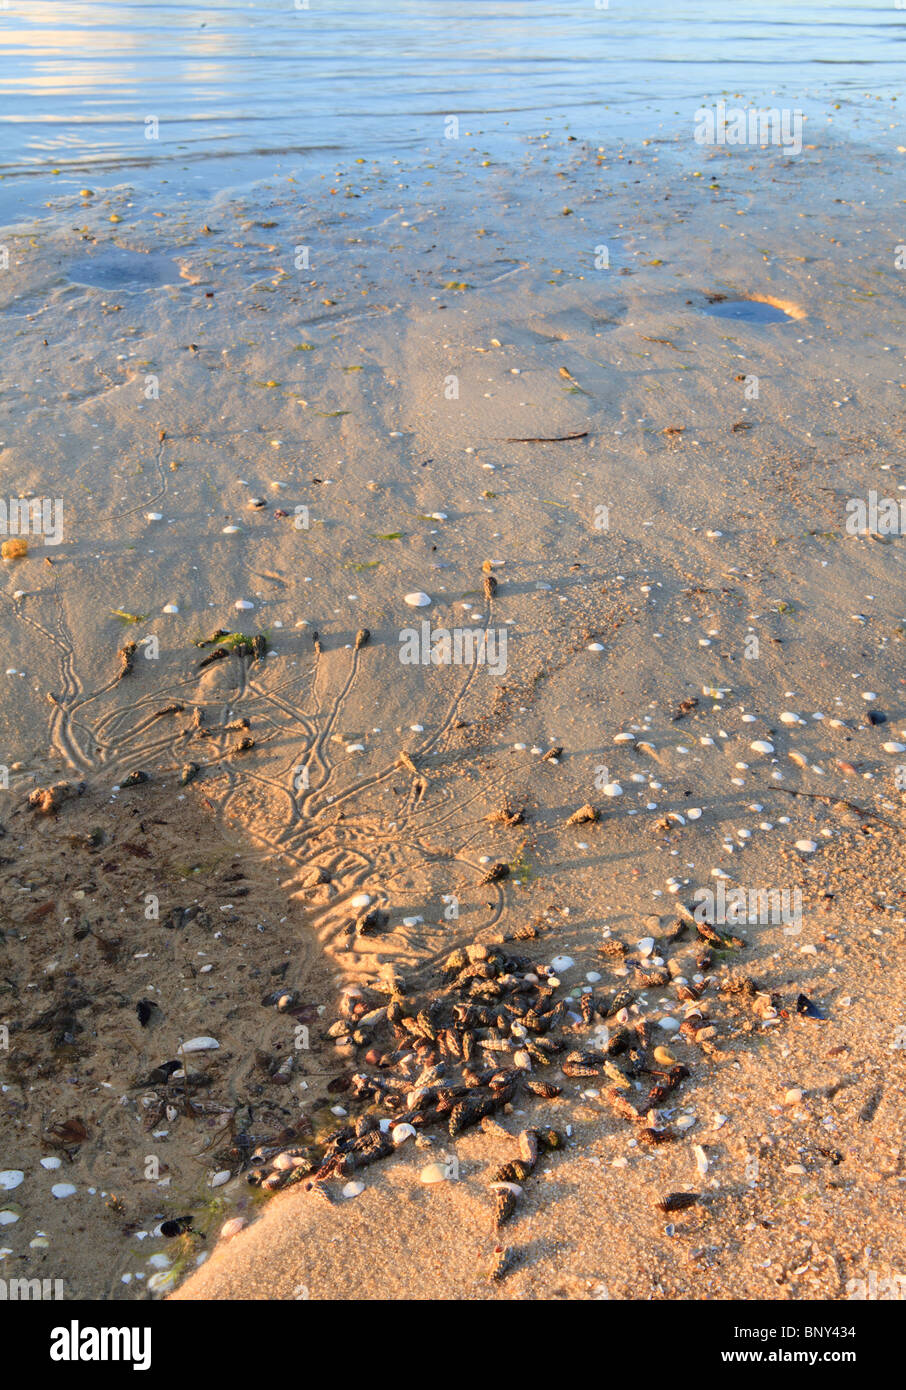 Hermit Crabs next to a pool of water. Several trails left by the crabs can be seen in the sand. - Stock Image